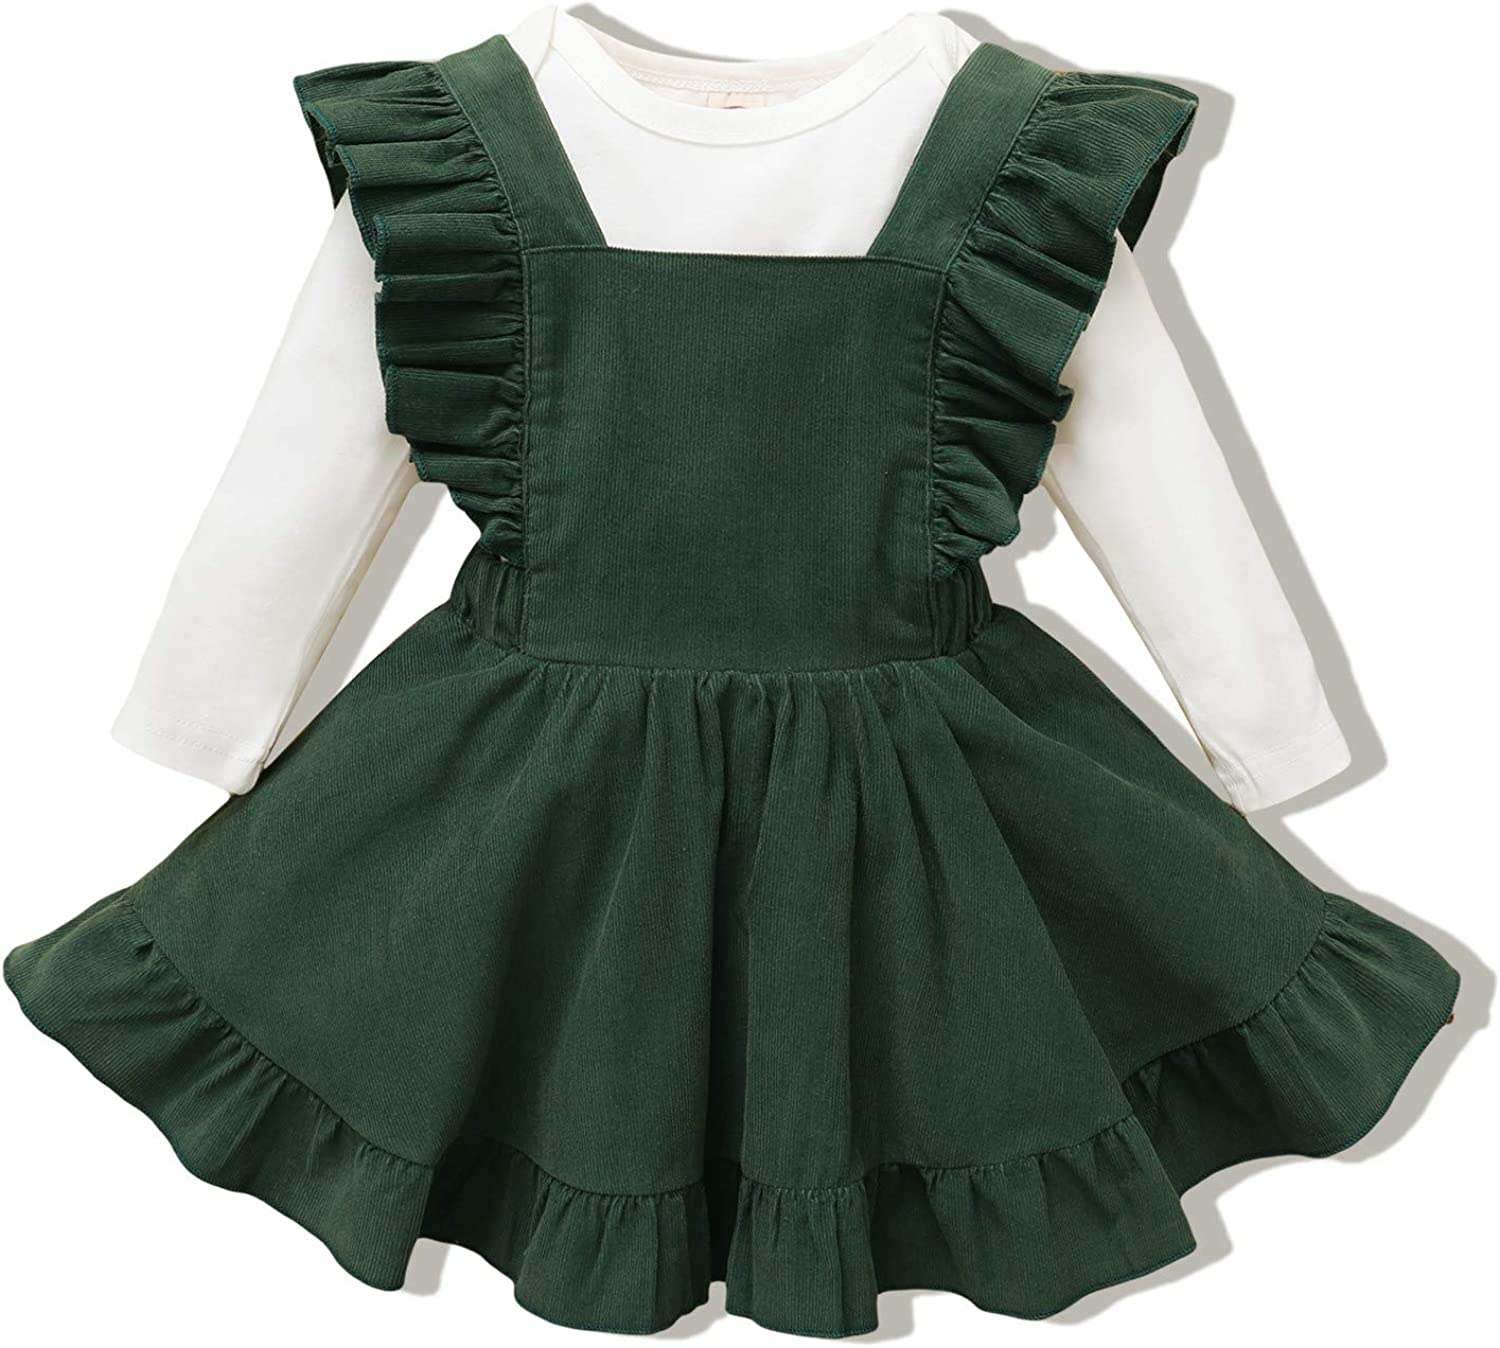 Infant Baby Girl Clothes Long Sleeve Overalls Dress Baby Suspender Skrit Set Fall Winter Clothing Toddler Girl Outfits